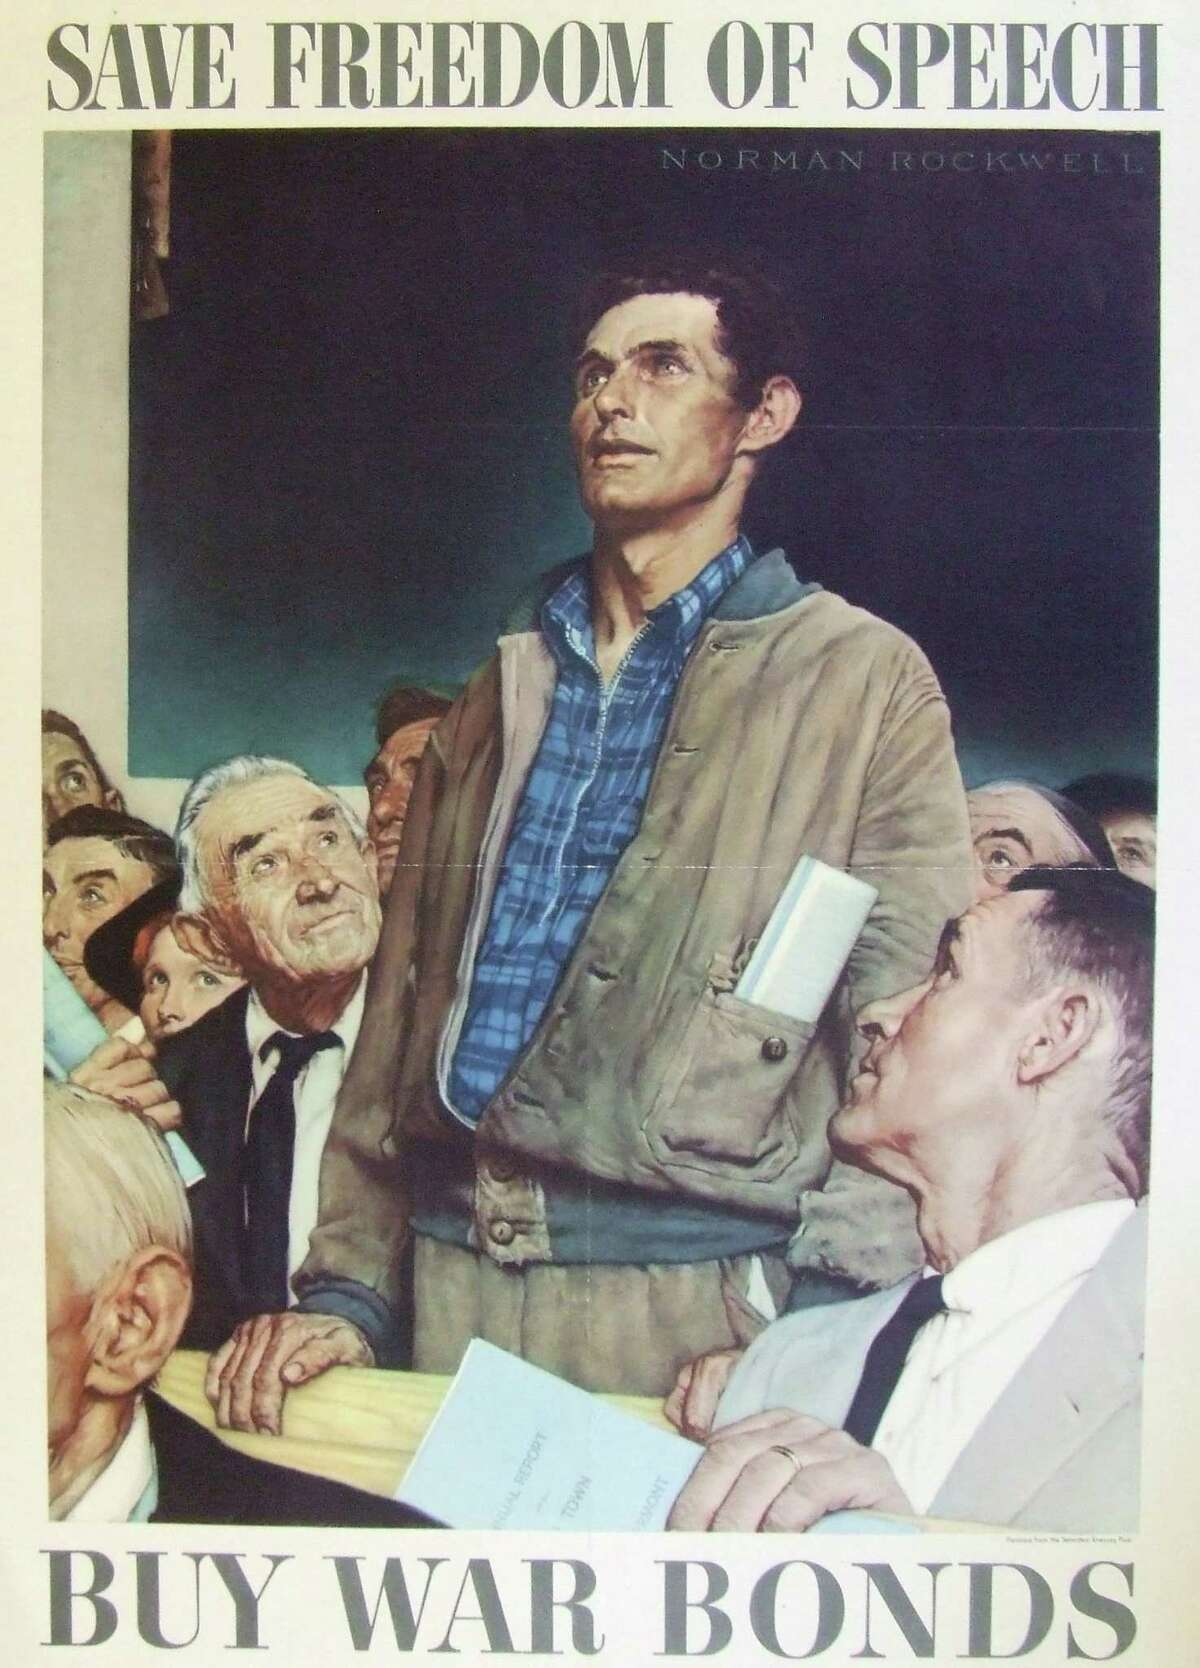 """Norman Rockwell's """"Freedom of Speech"""" --- along with his three other """"freedoms"""" illustrations --- was adopted by the U.S. Treasury to urge Americans to buy war bonds to help finance World War II. The poster is part of an exhibit of wartime posters at the Fairfield Museum and History Center. Faifield CT. January 2015."""